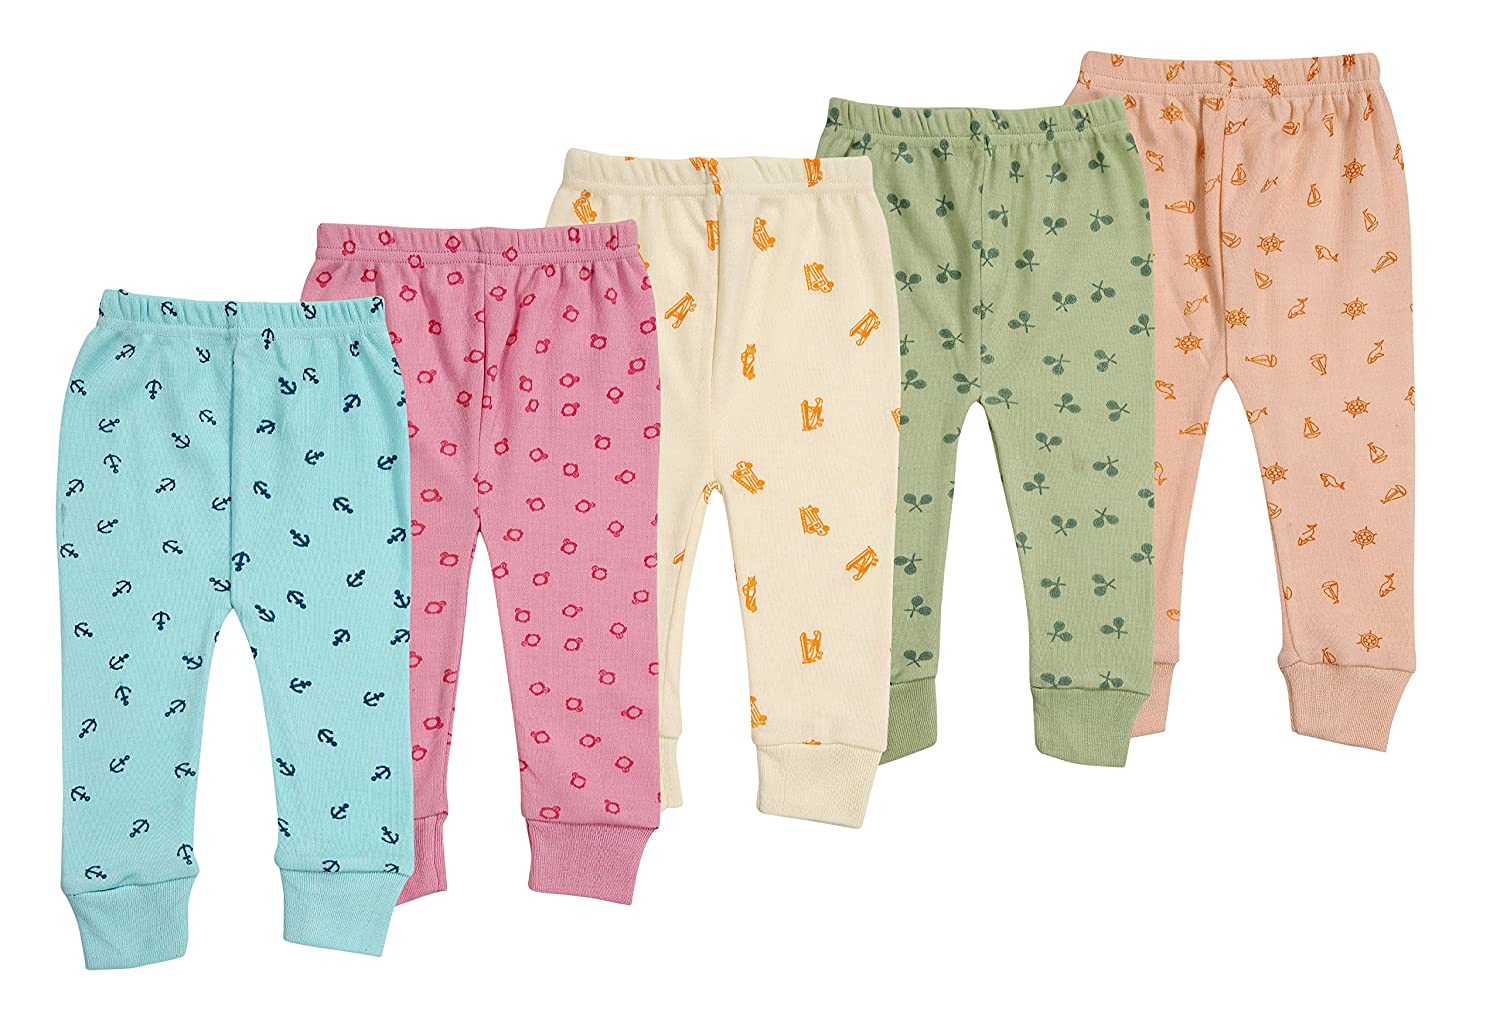 Kuchipoo Unisex Assorted Print Pajama Bottom (Pack of 5)